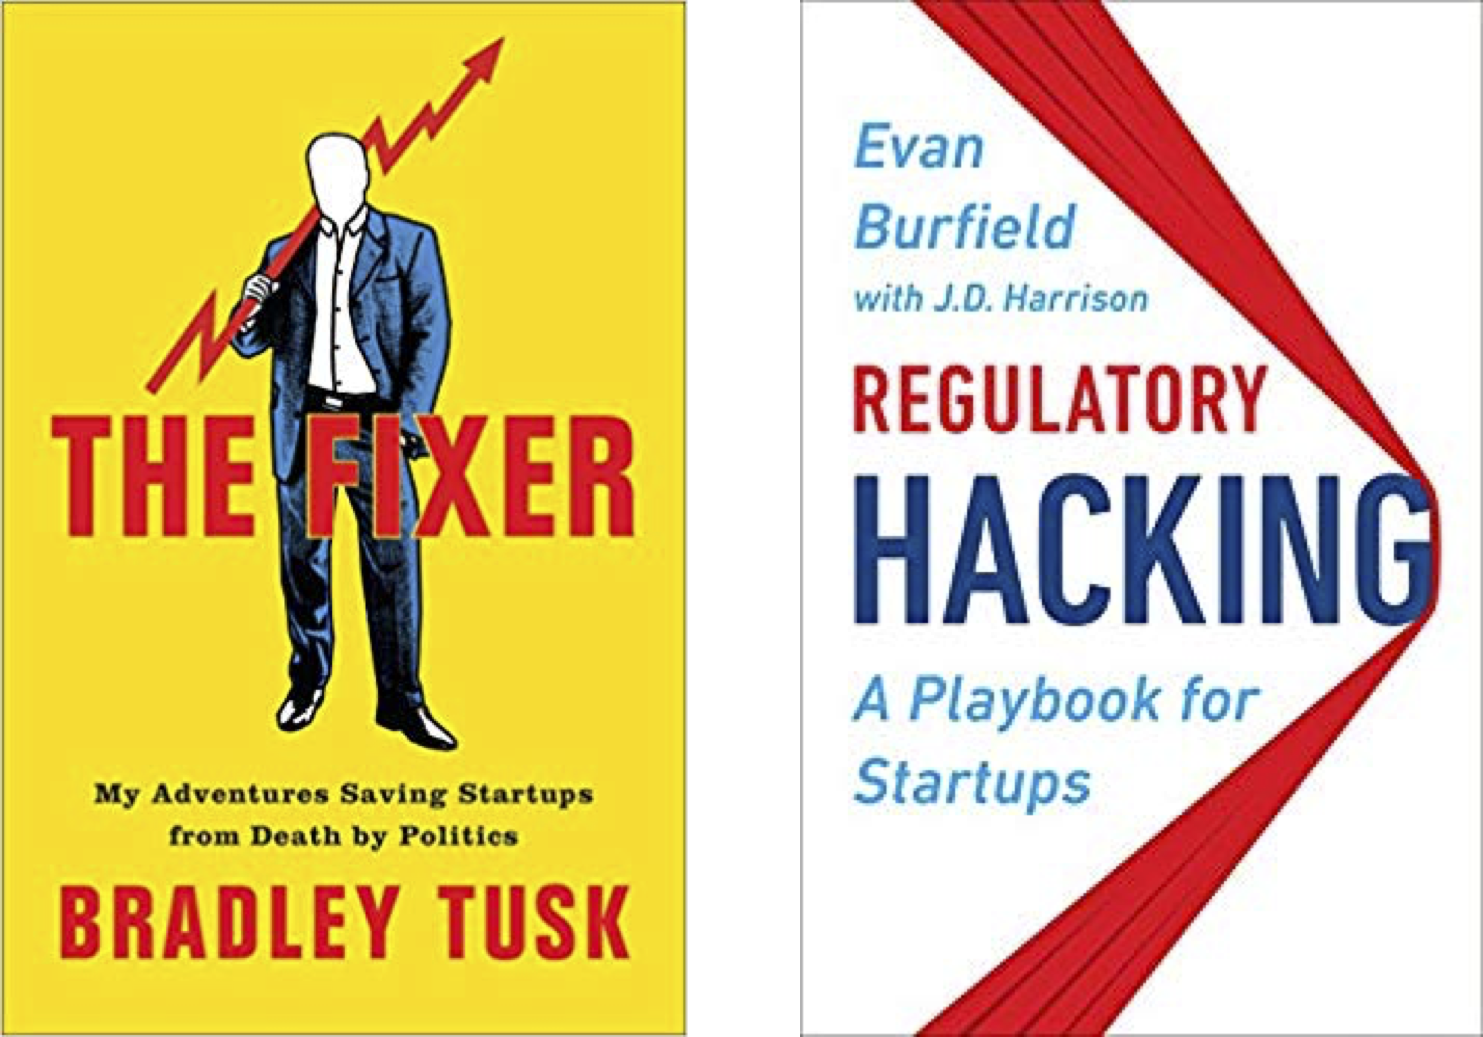 Steve Blank Entrepreneurship And Innovation Sydney Electrical Contractors Just Another Wordpresscom Site These Two Books One By A Practitioner The Other An Investor Are Must Reads